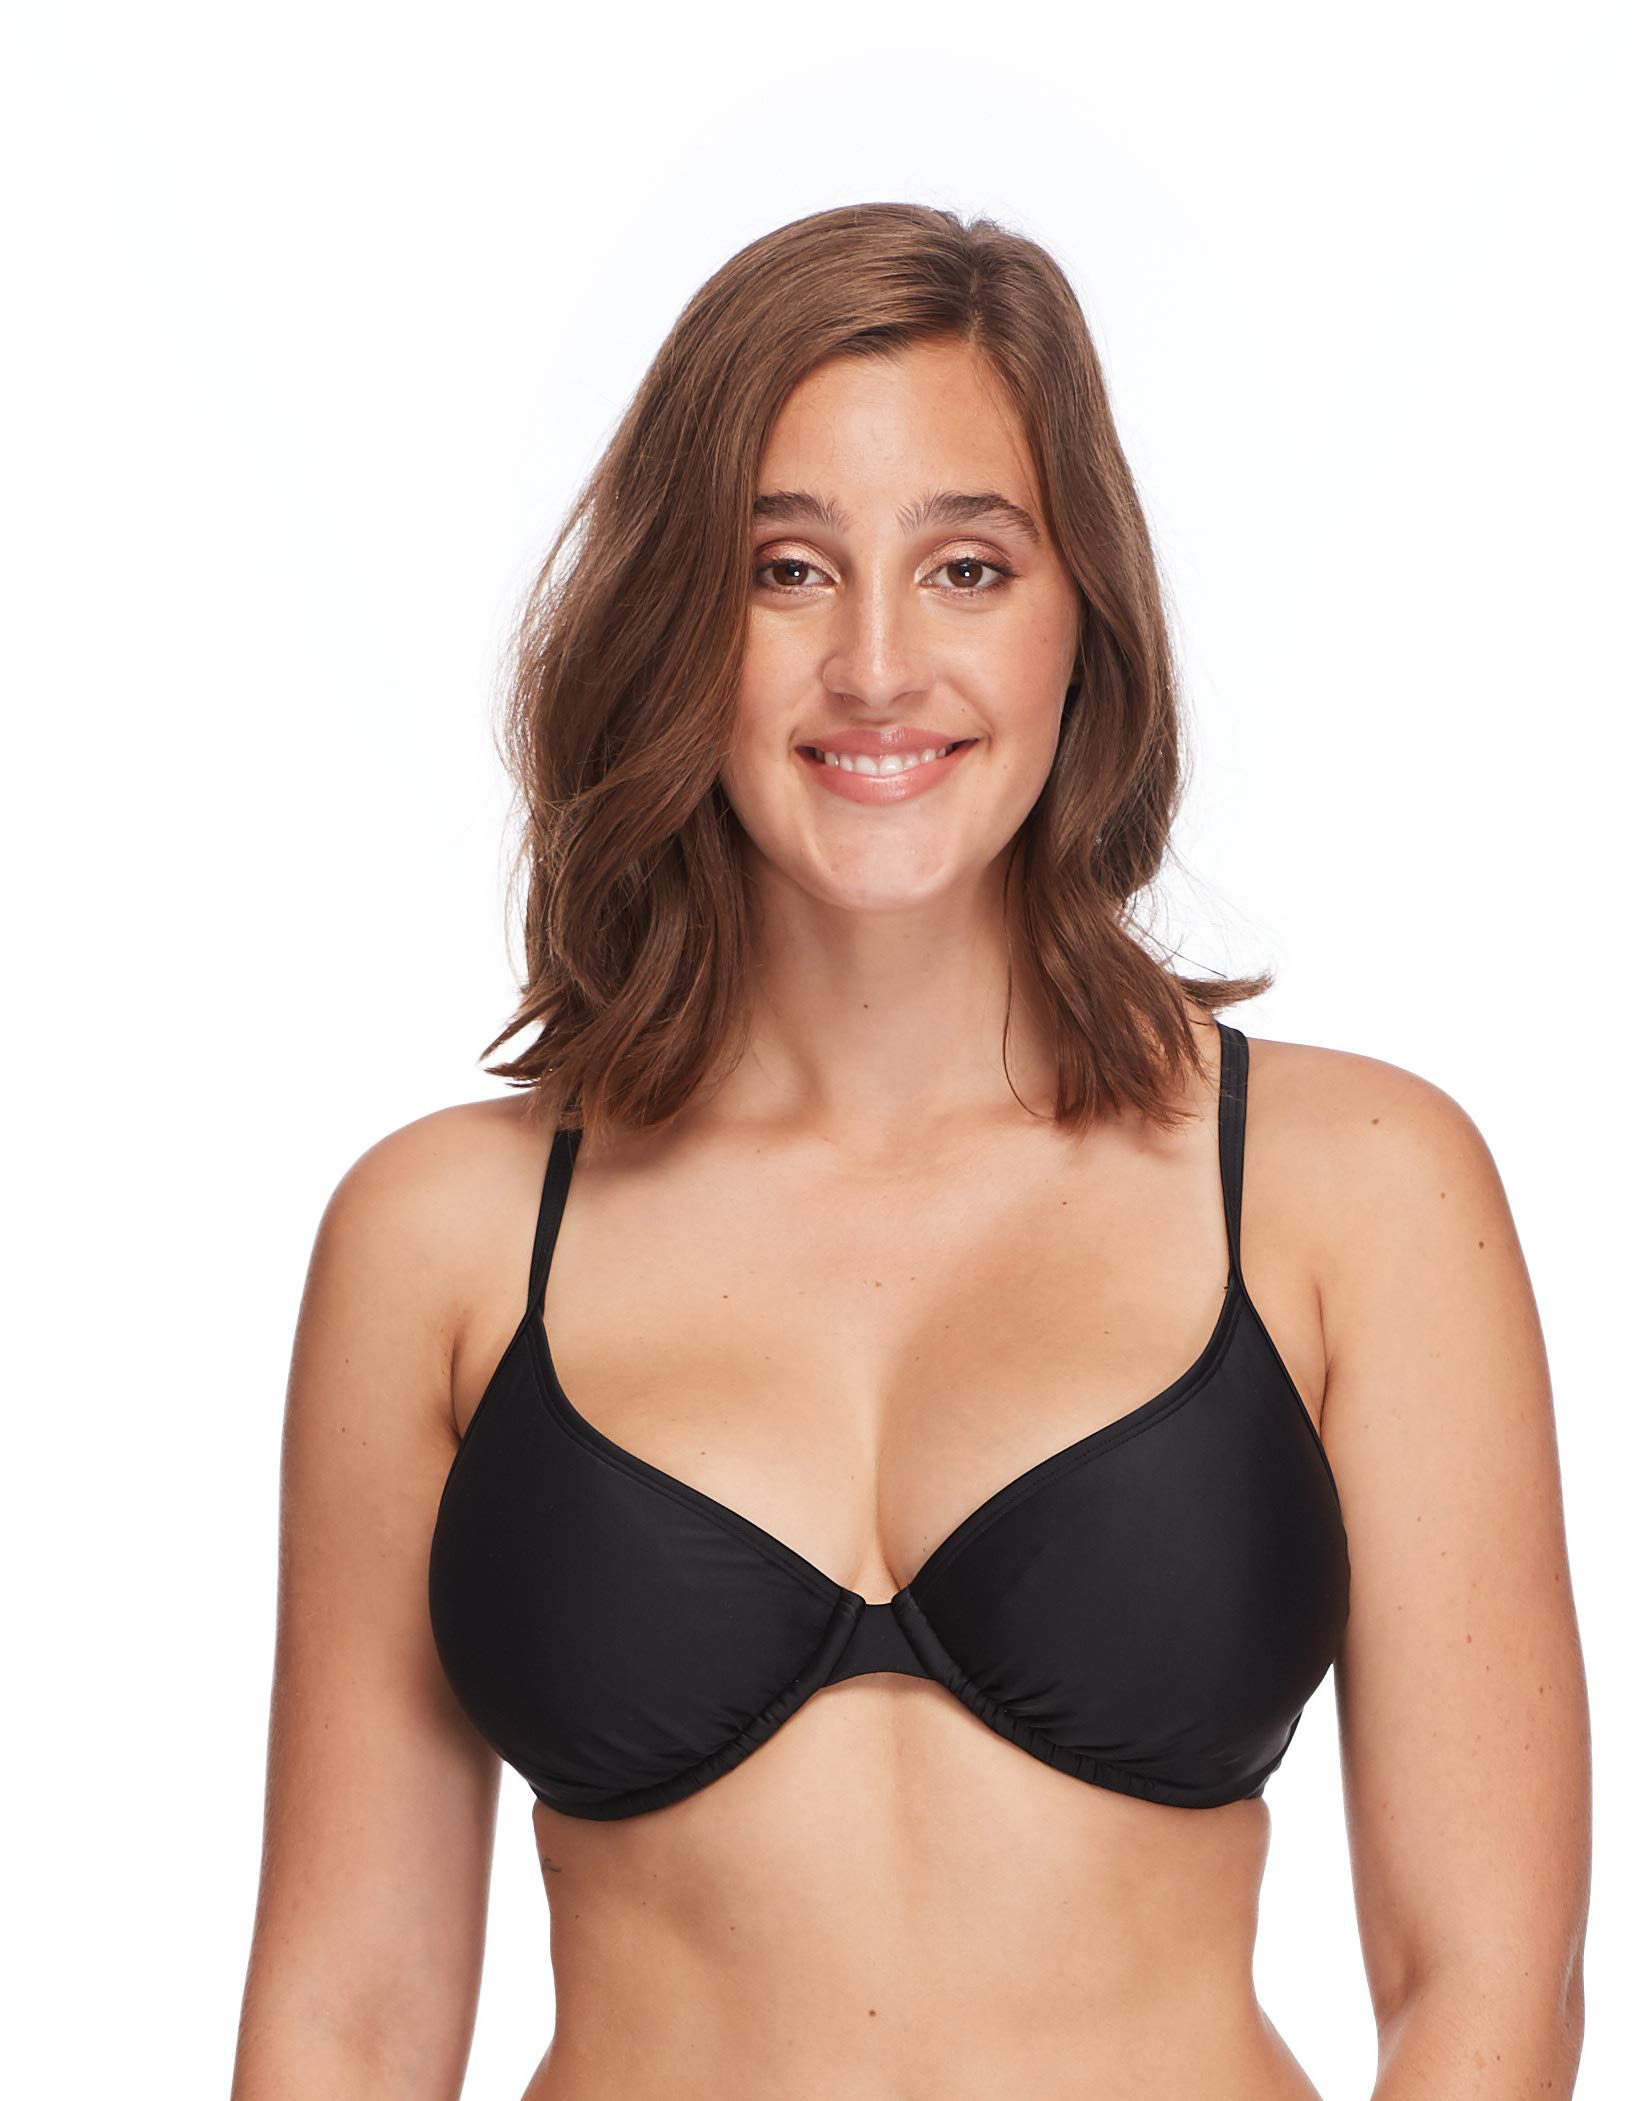 Body Glove Women's Smoothies Solo Solid Underwire D, DD, E, F Cup Bikini Top Swimsuit, Black by Body Glove